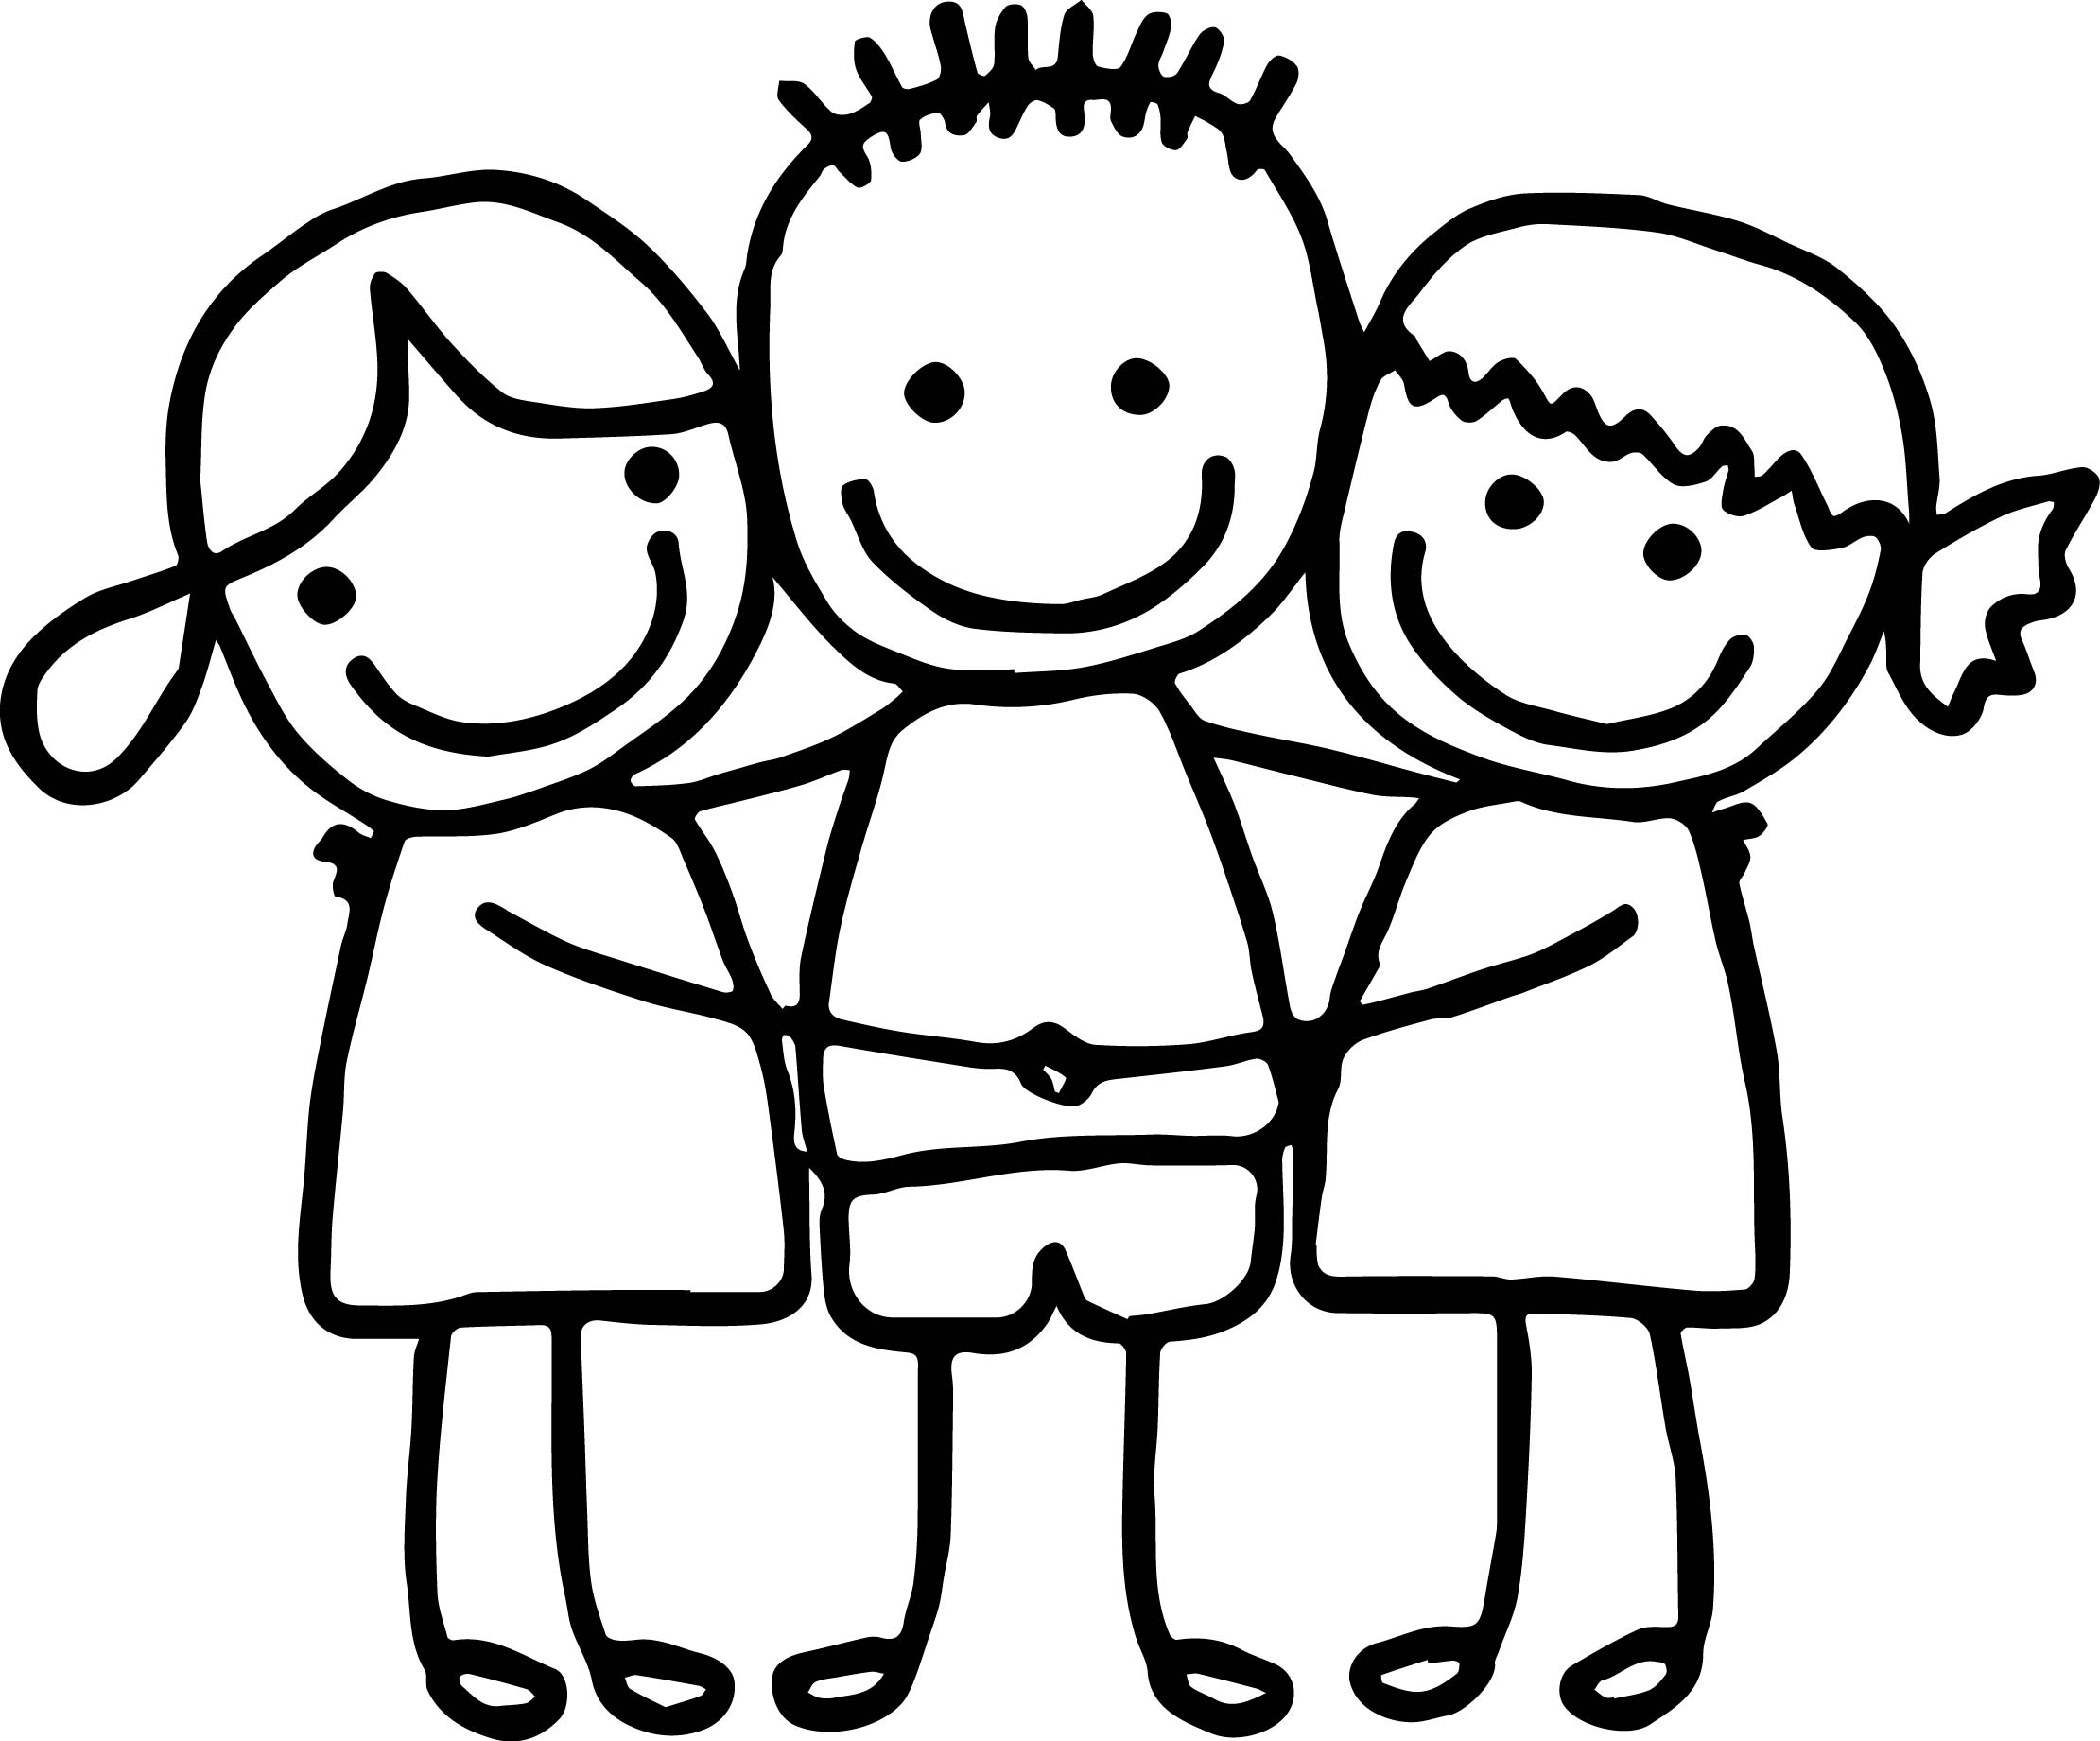 Best Friends Cute Girls Boy Hugging Coloring Page | Wecoloringpage.com